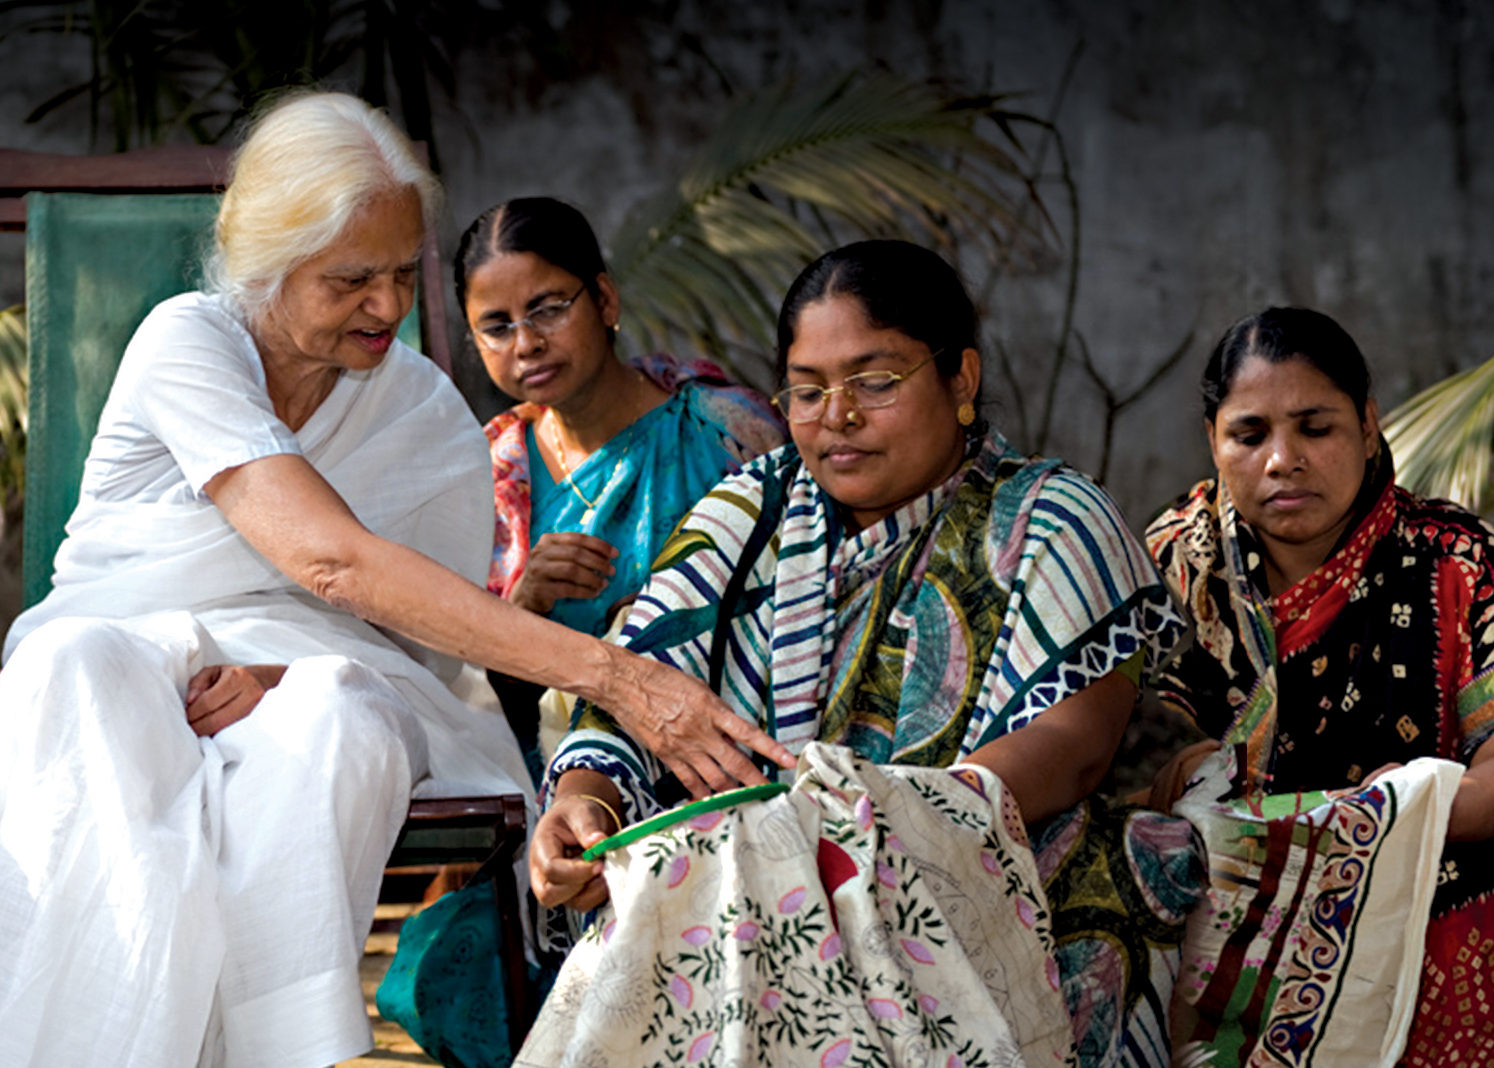 Image of Surayia Rahman with three fellow artisan embroiderers. One woman has an embroidery hoop and Surayia is seen guiding the embroiderer while the other two women watch.